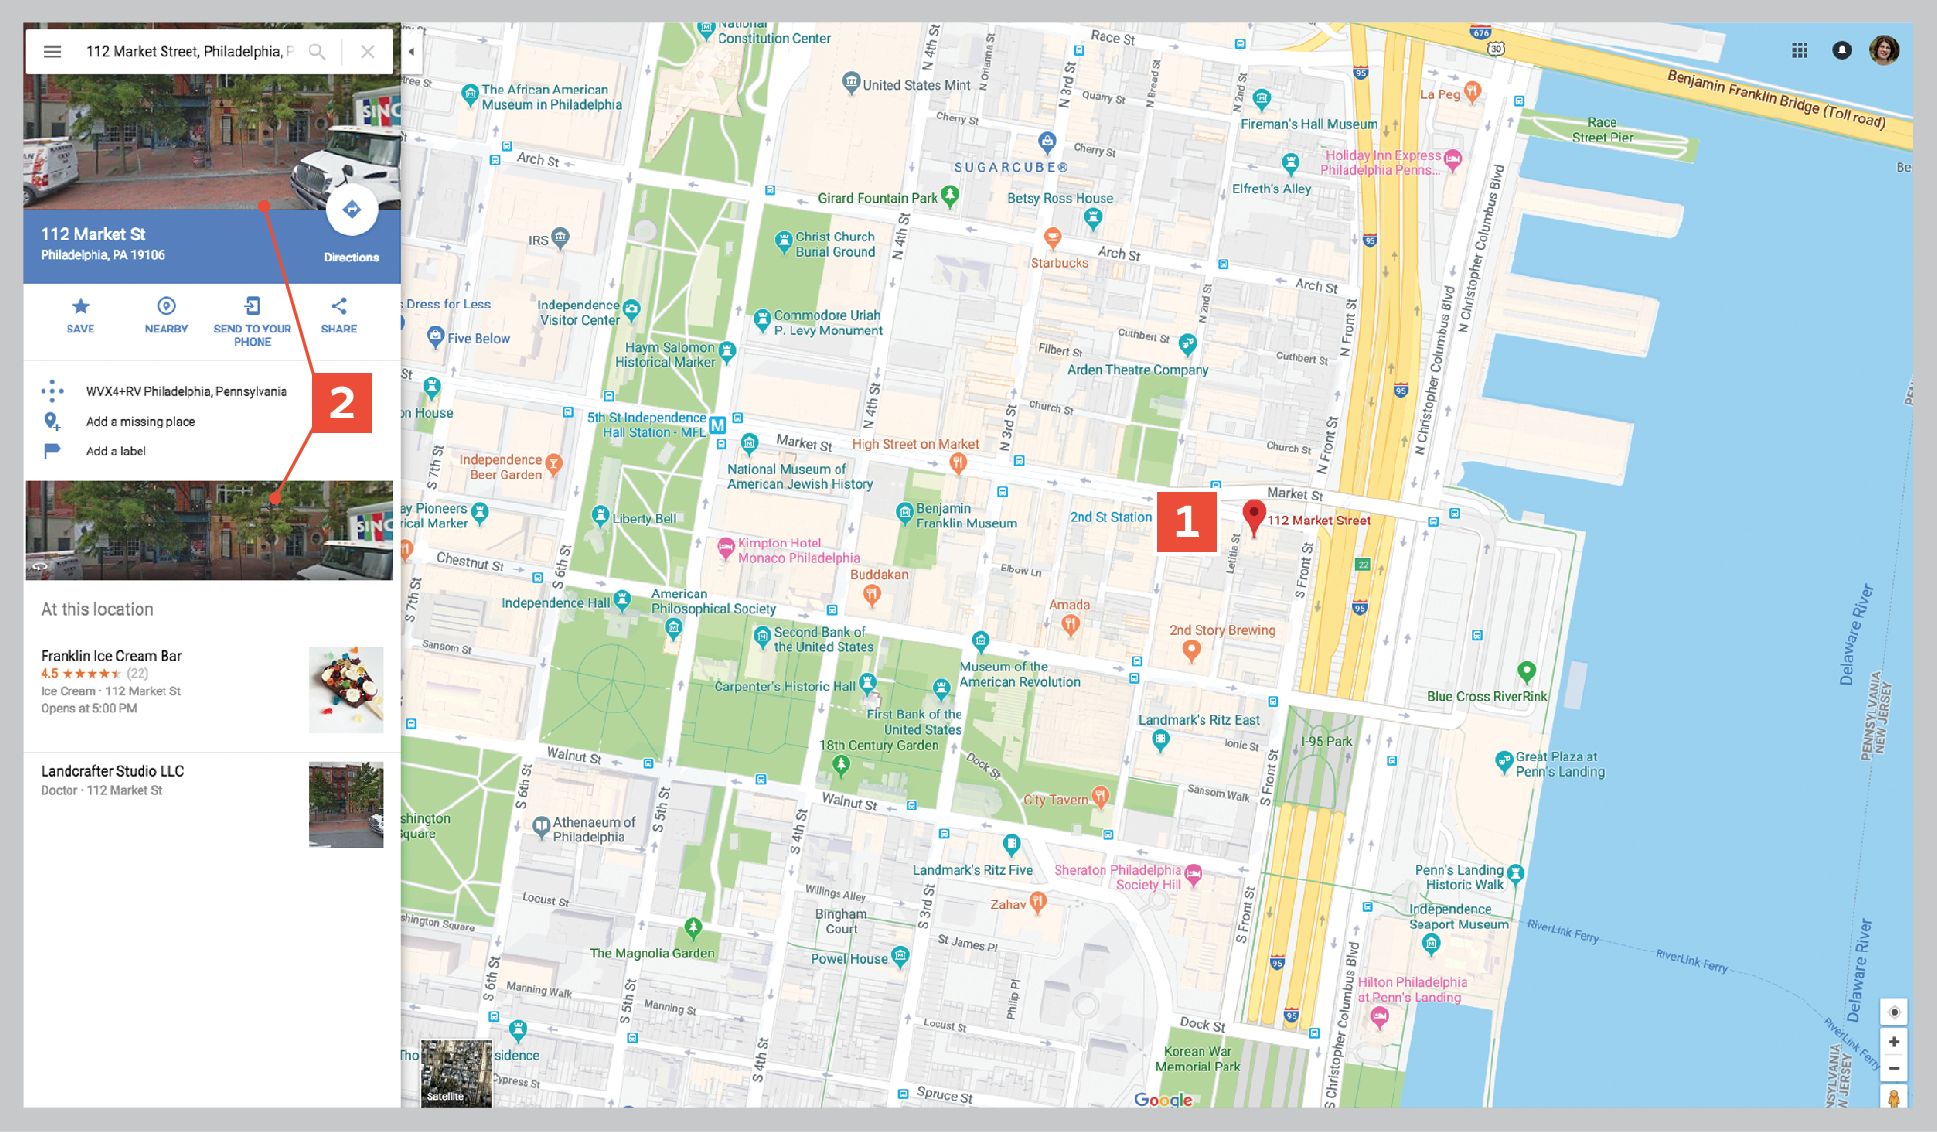 Begin using Google Maps for genealogy by searching for an ancestral location, then clicking the image to go to Street View.